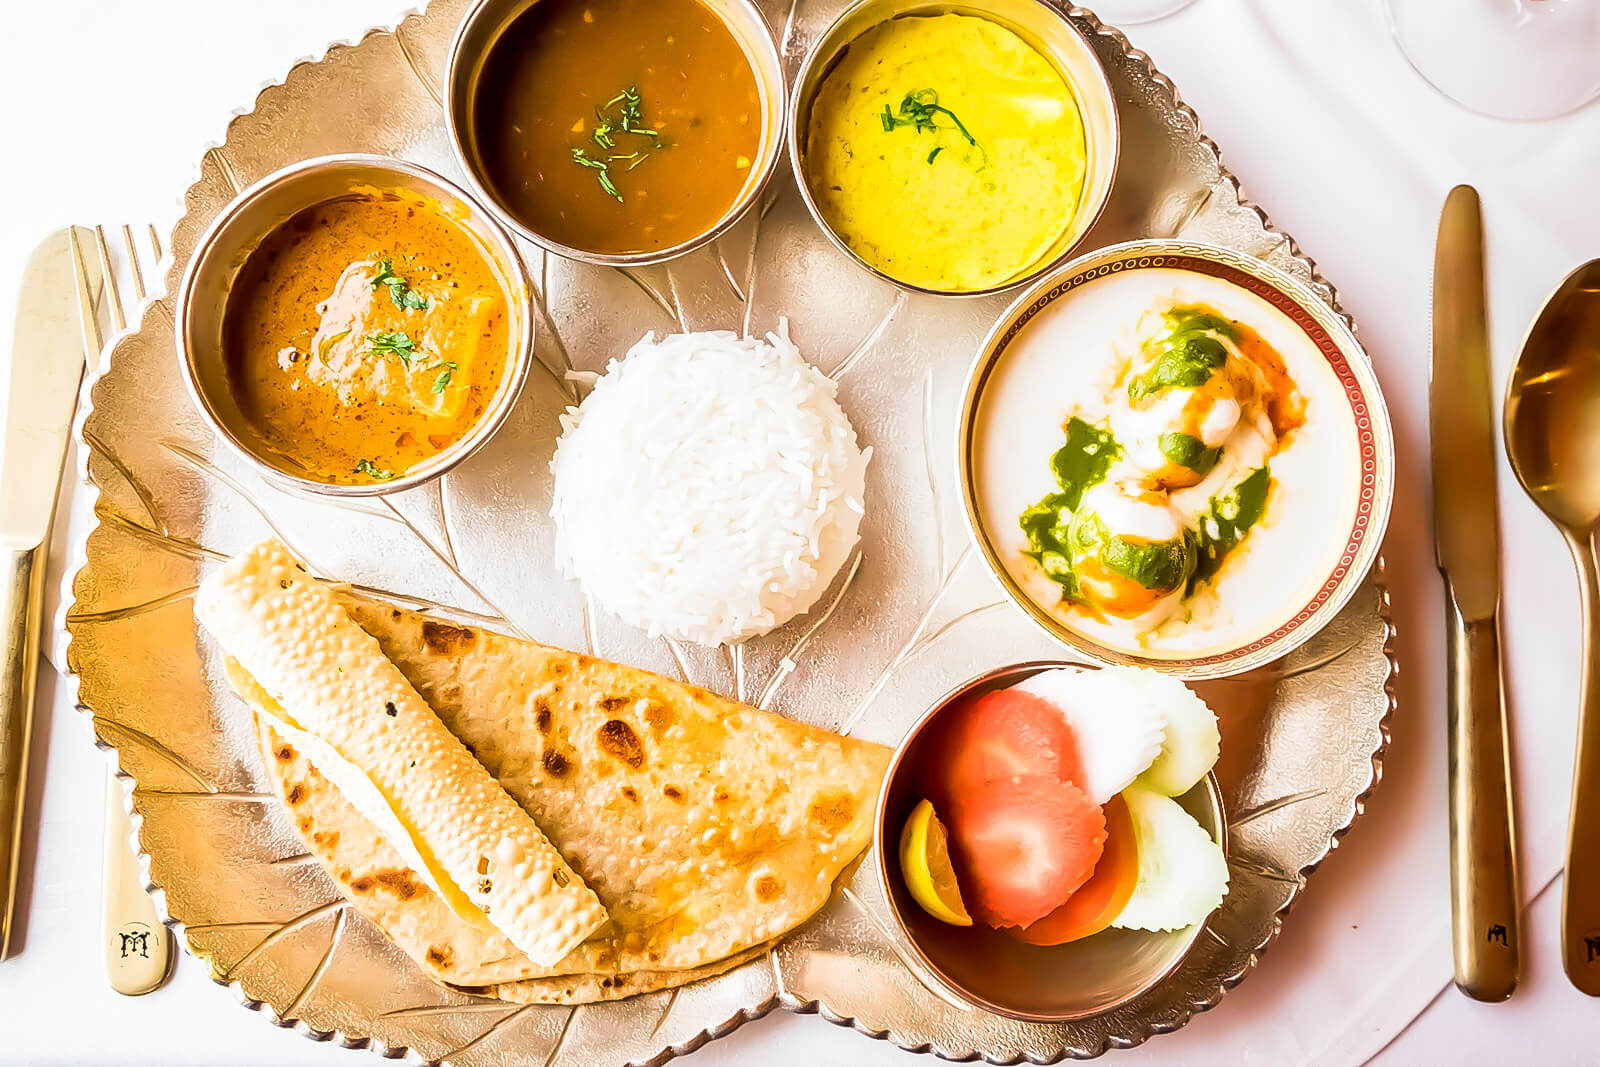 The meals aboard the Maharaja Express, one of the Luxury Trains of India